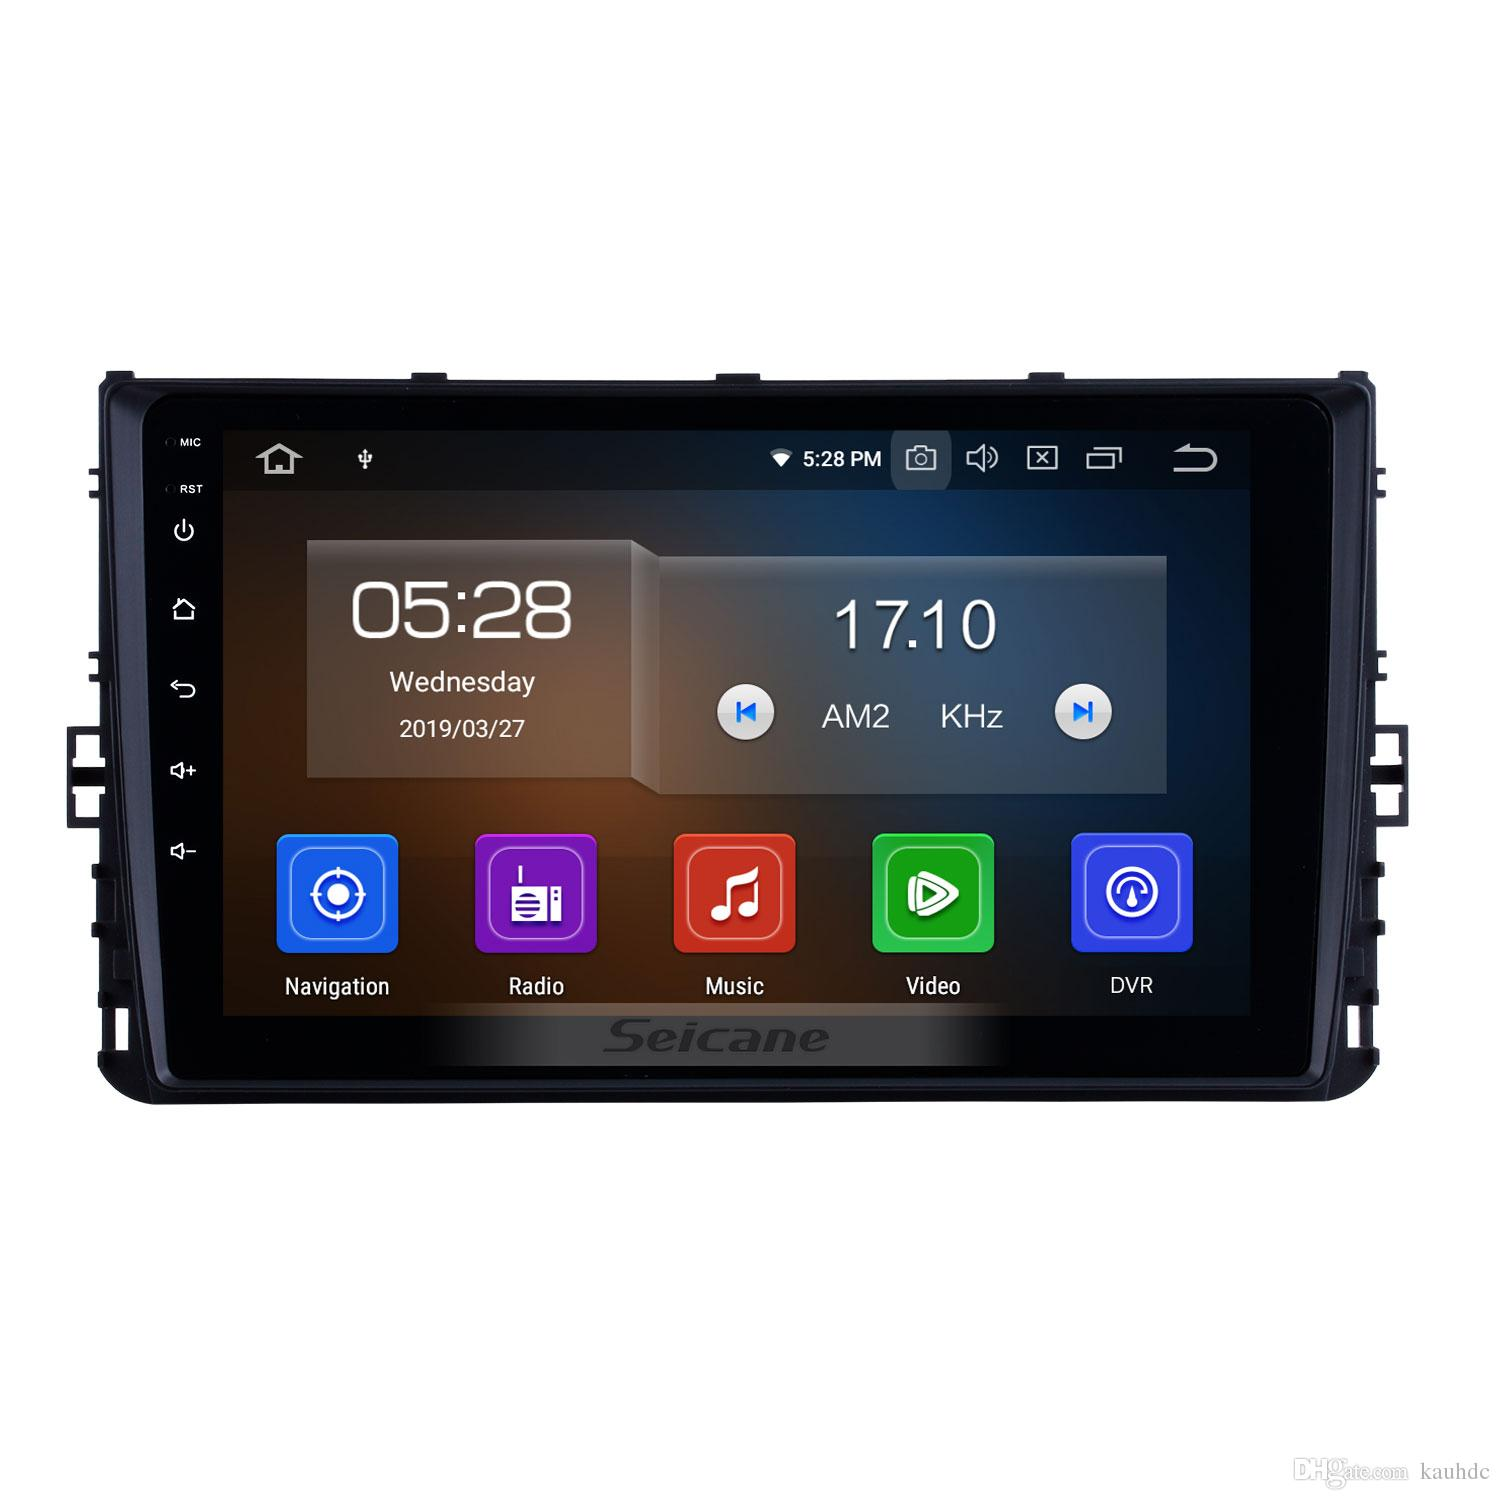 OEM 9 inch Android 9.0 HD Touchscreen Car Stereo GPS Navigation for 2018 VW Volkswagen Universal with WIFI Bluetooth support car dvd DVR